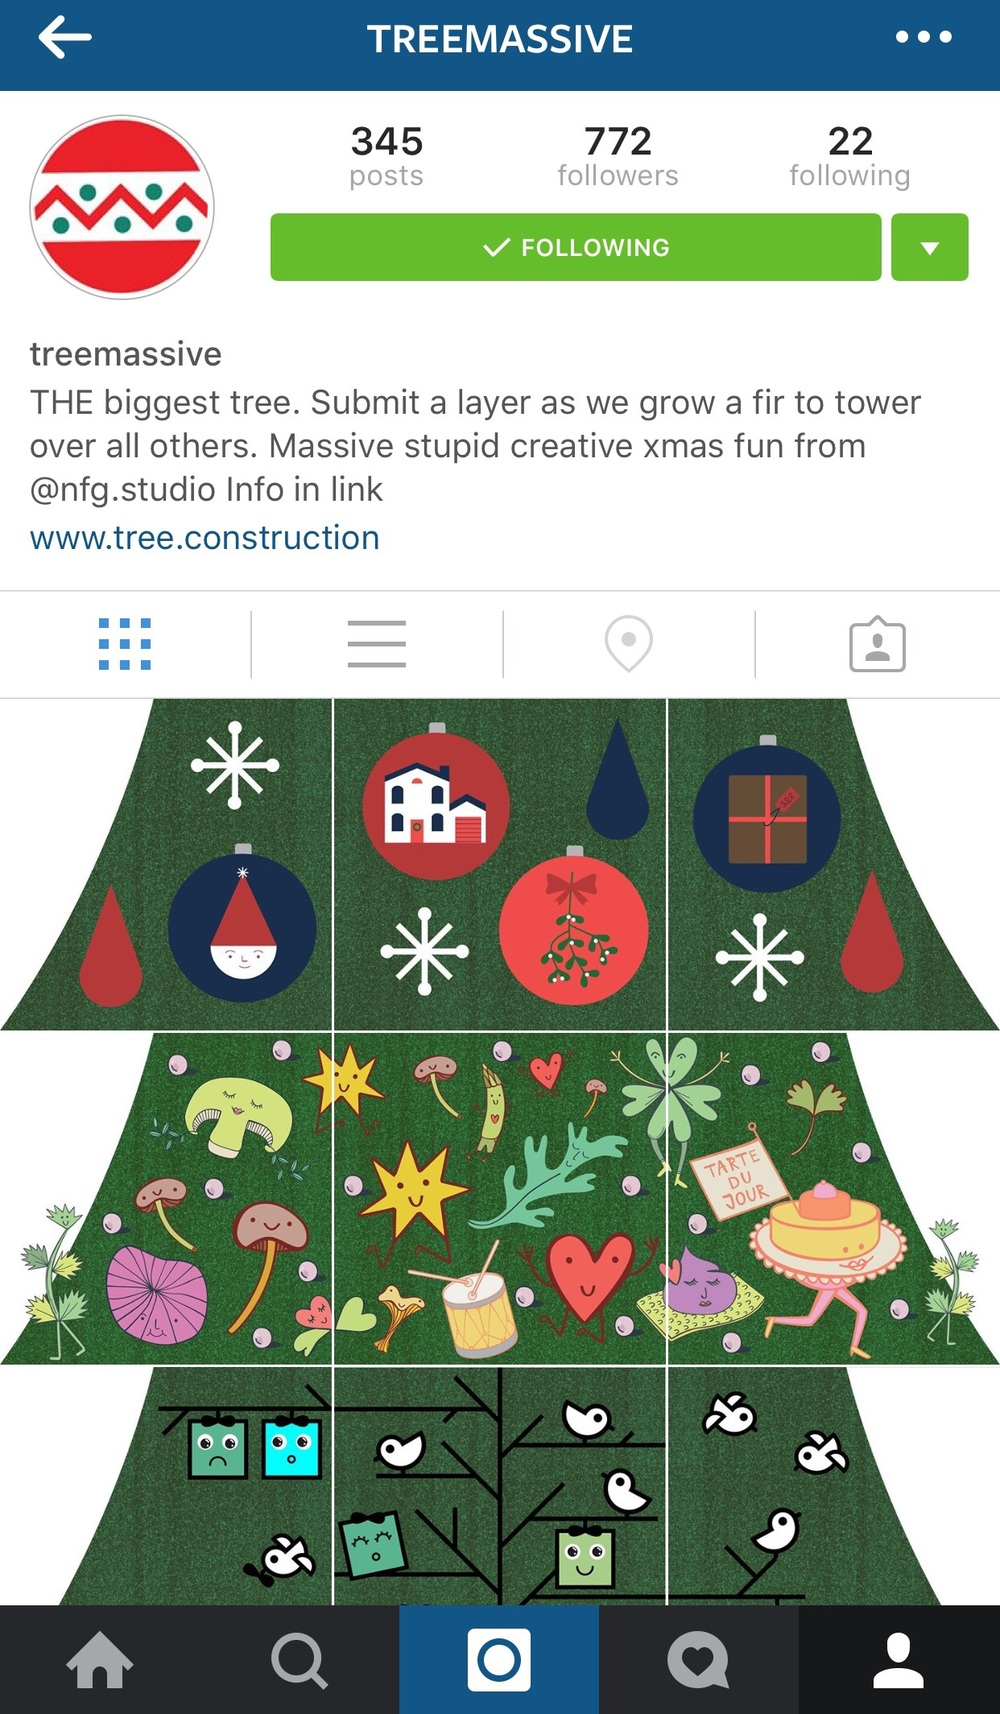 nfg studio tree massive instagram.jpg